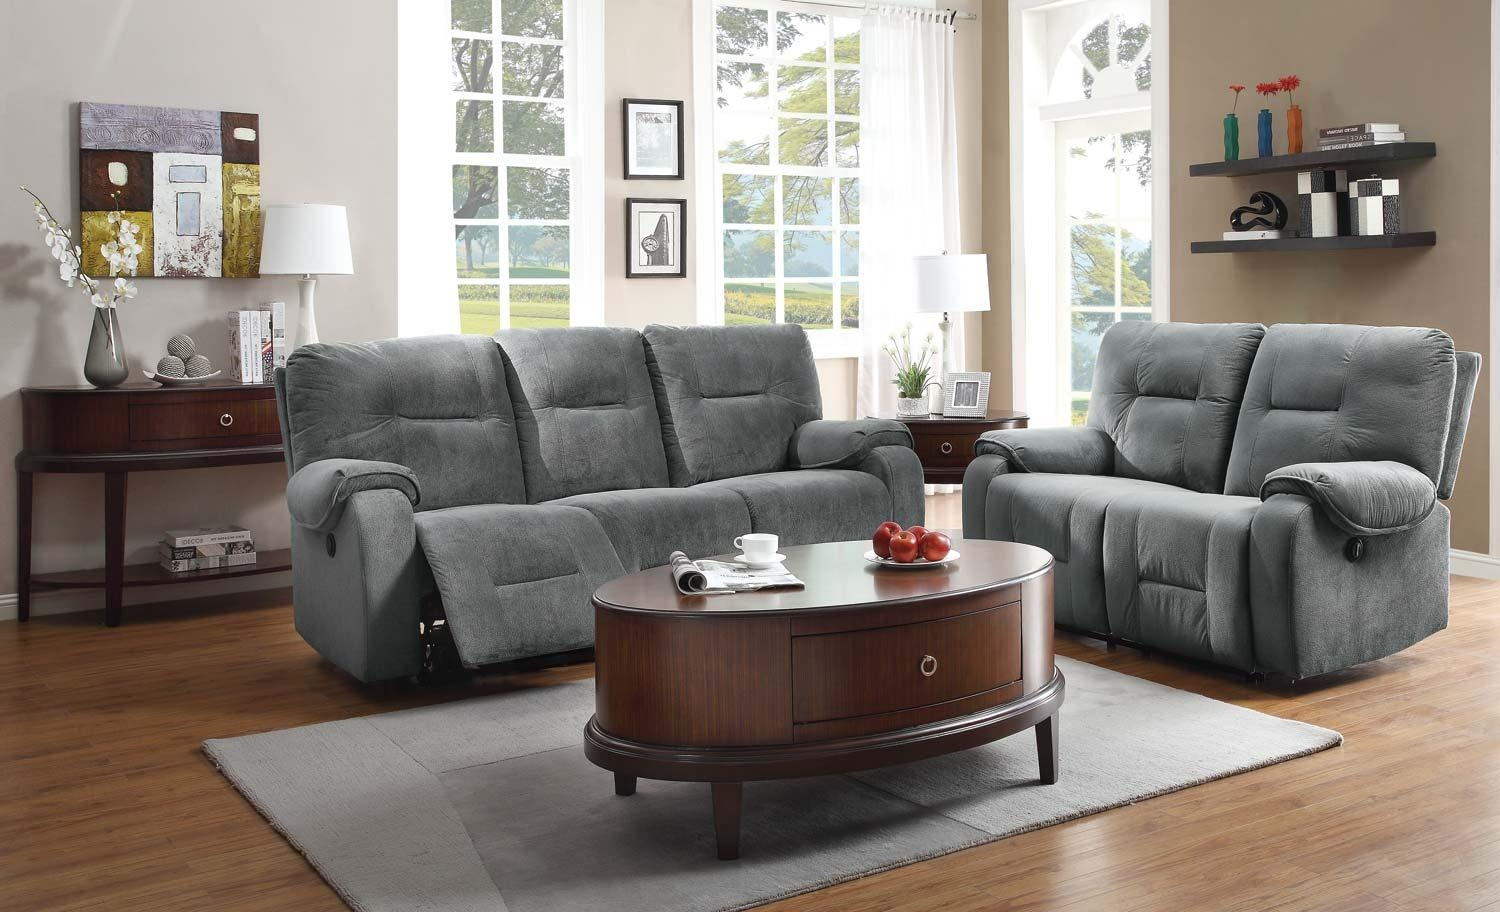 Homelegance Bensonhurst Power Reclining Sofa Set – Blue Grey Regarding Blue Gray Sofas (View 4 of 20)